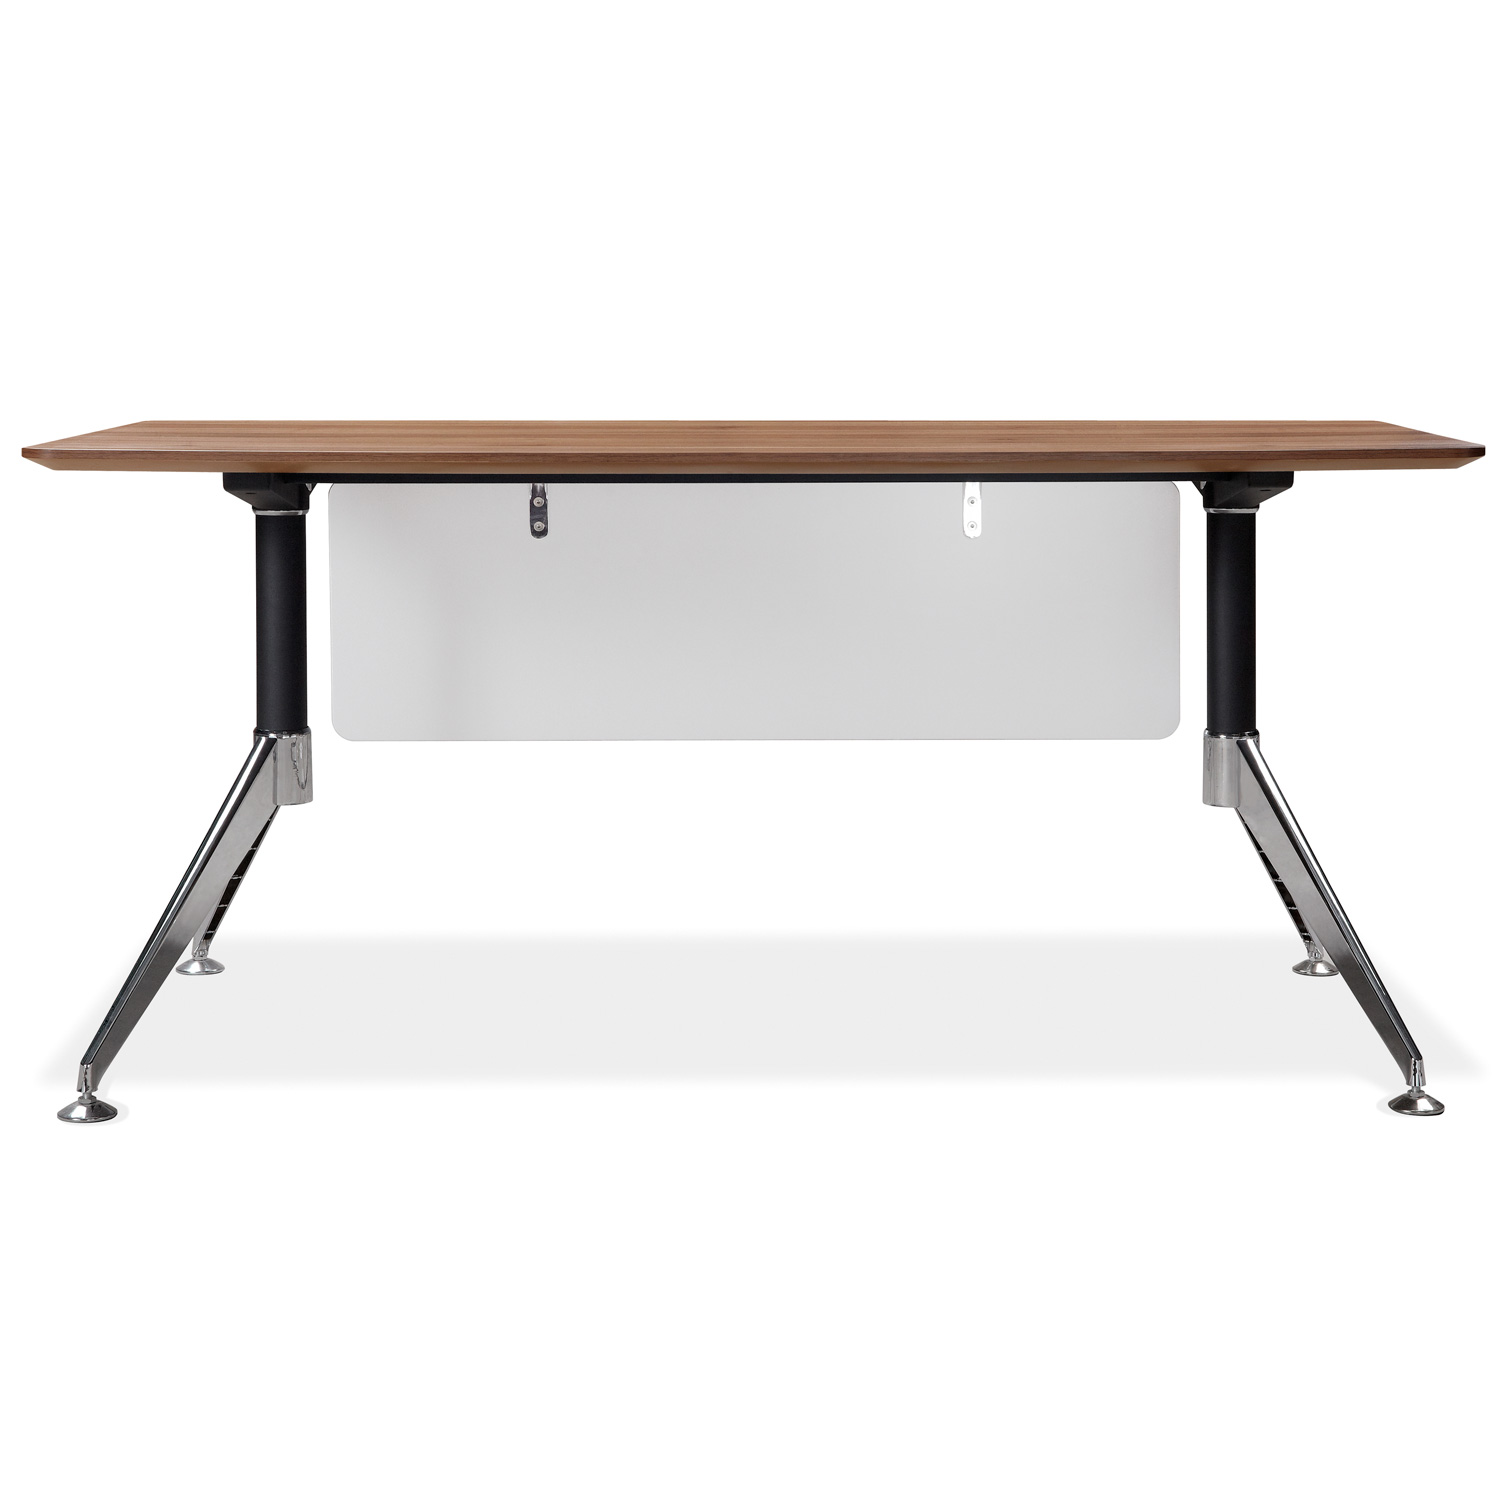 63 Inch Rectangular Desk - Steel Legs, Modesty Panel, Walnut